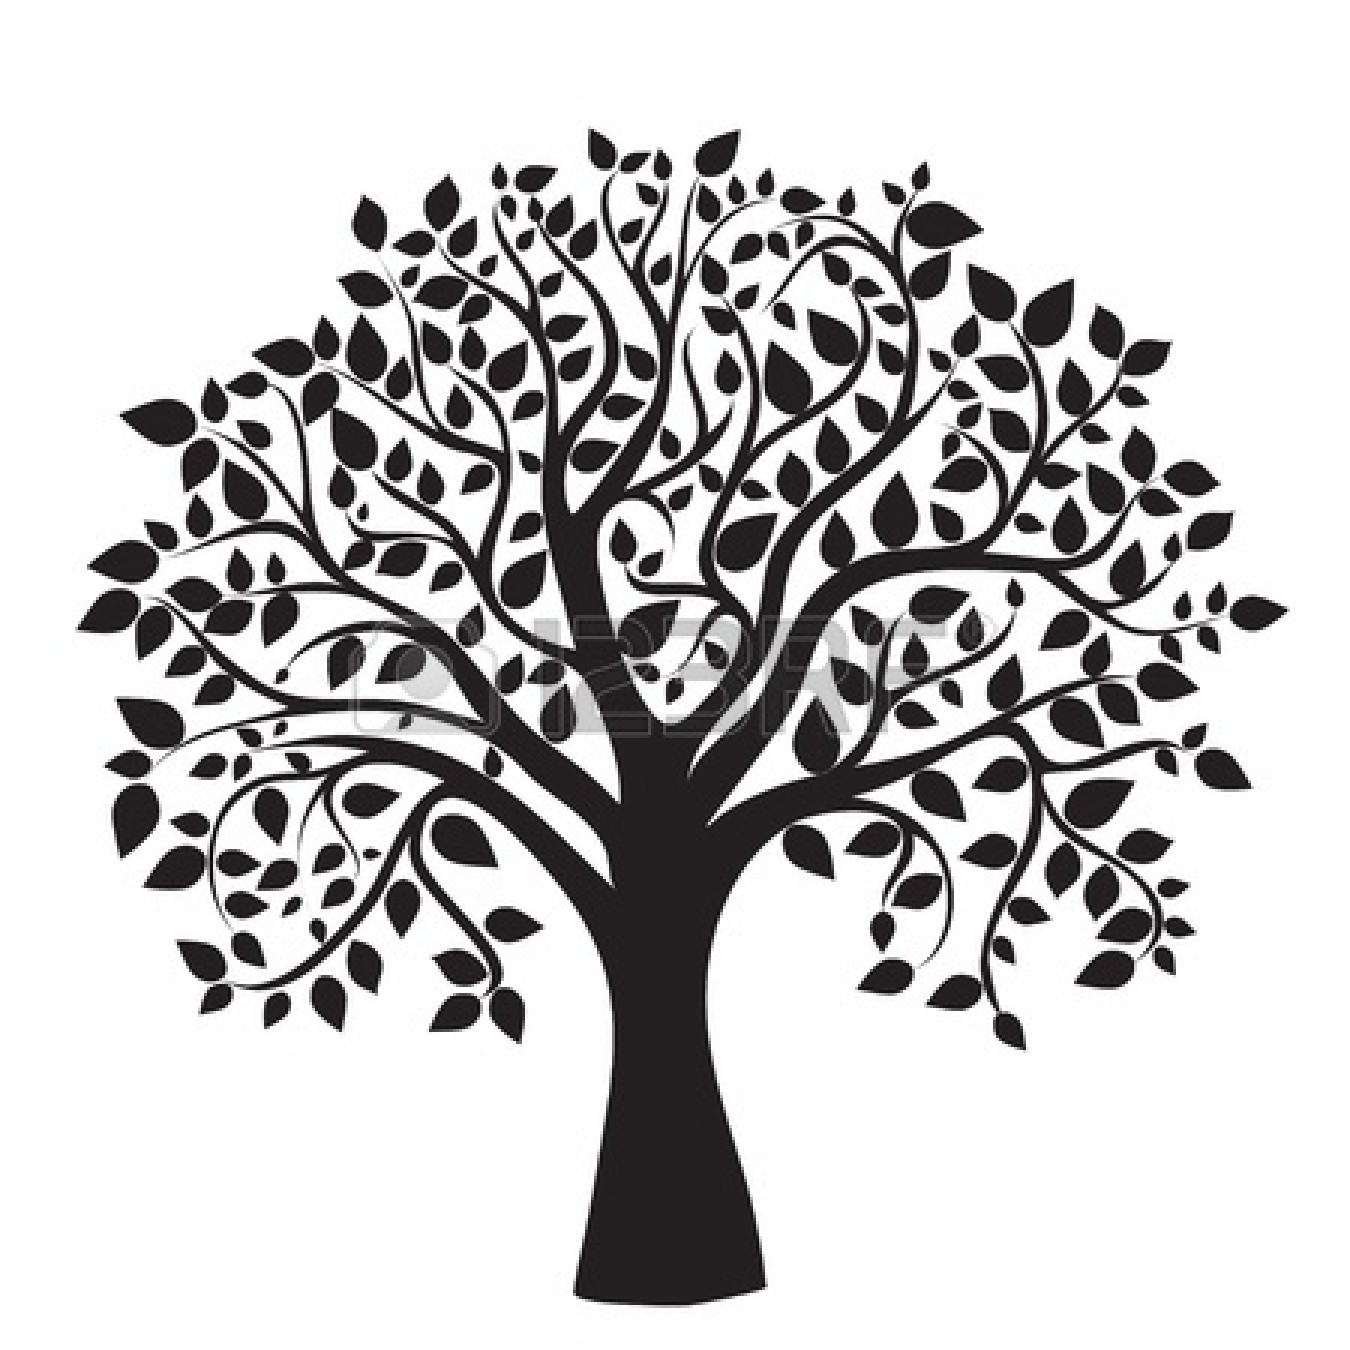 Tree of life silhouette clipart image black and white stock Black And White Tree Of Life PNG Transparent Black And White Tree Of ... image black and white stock